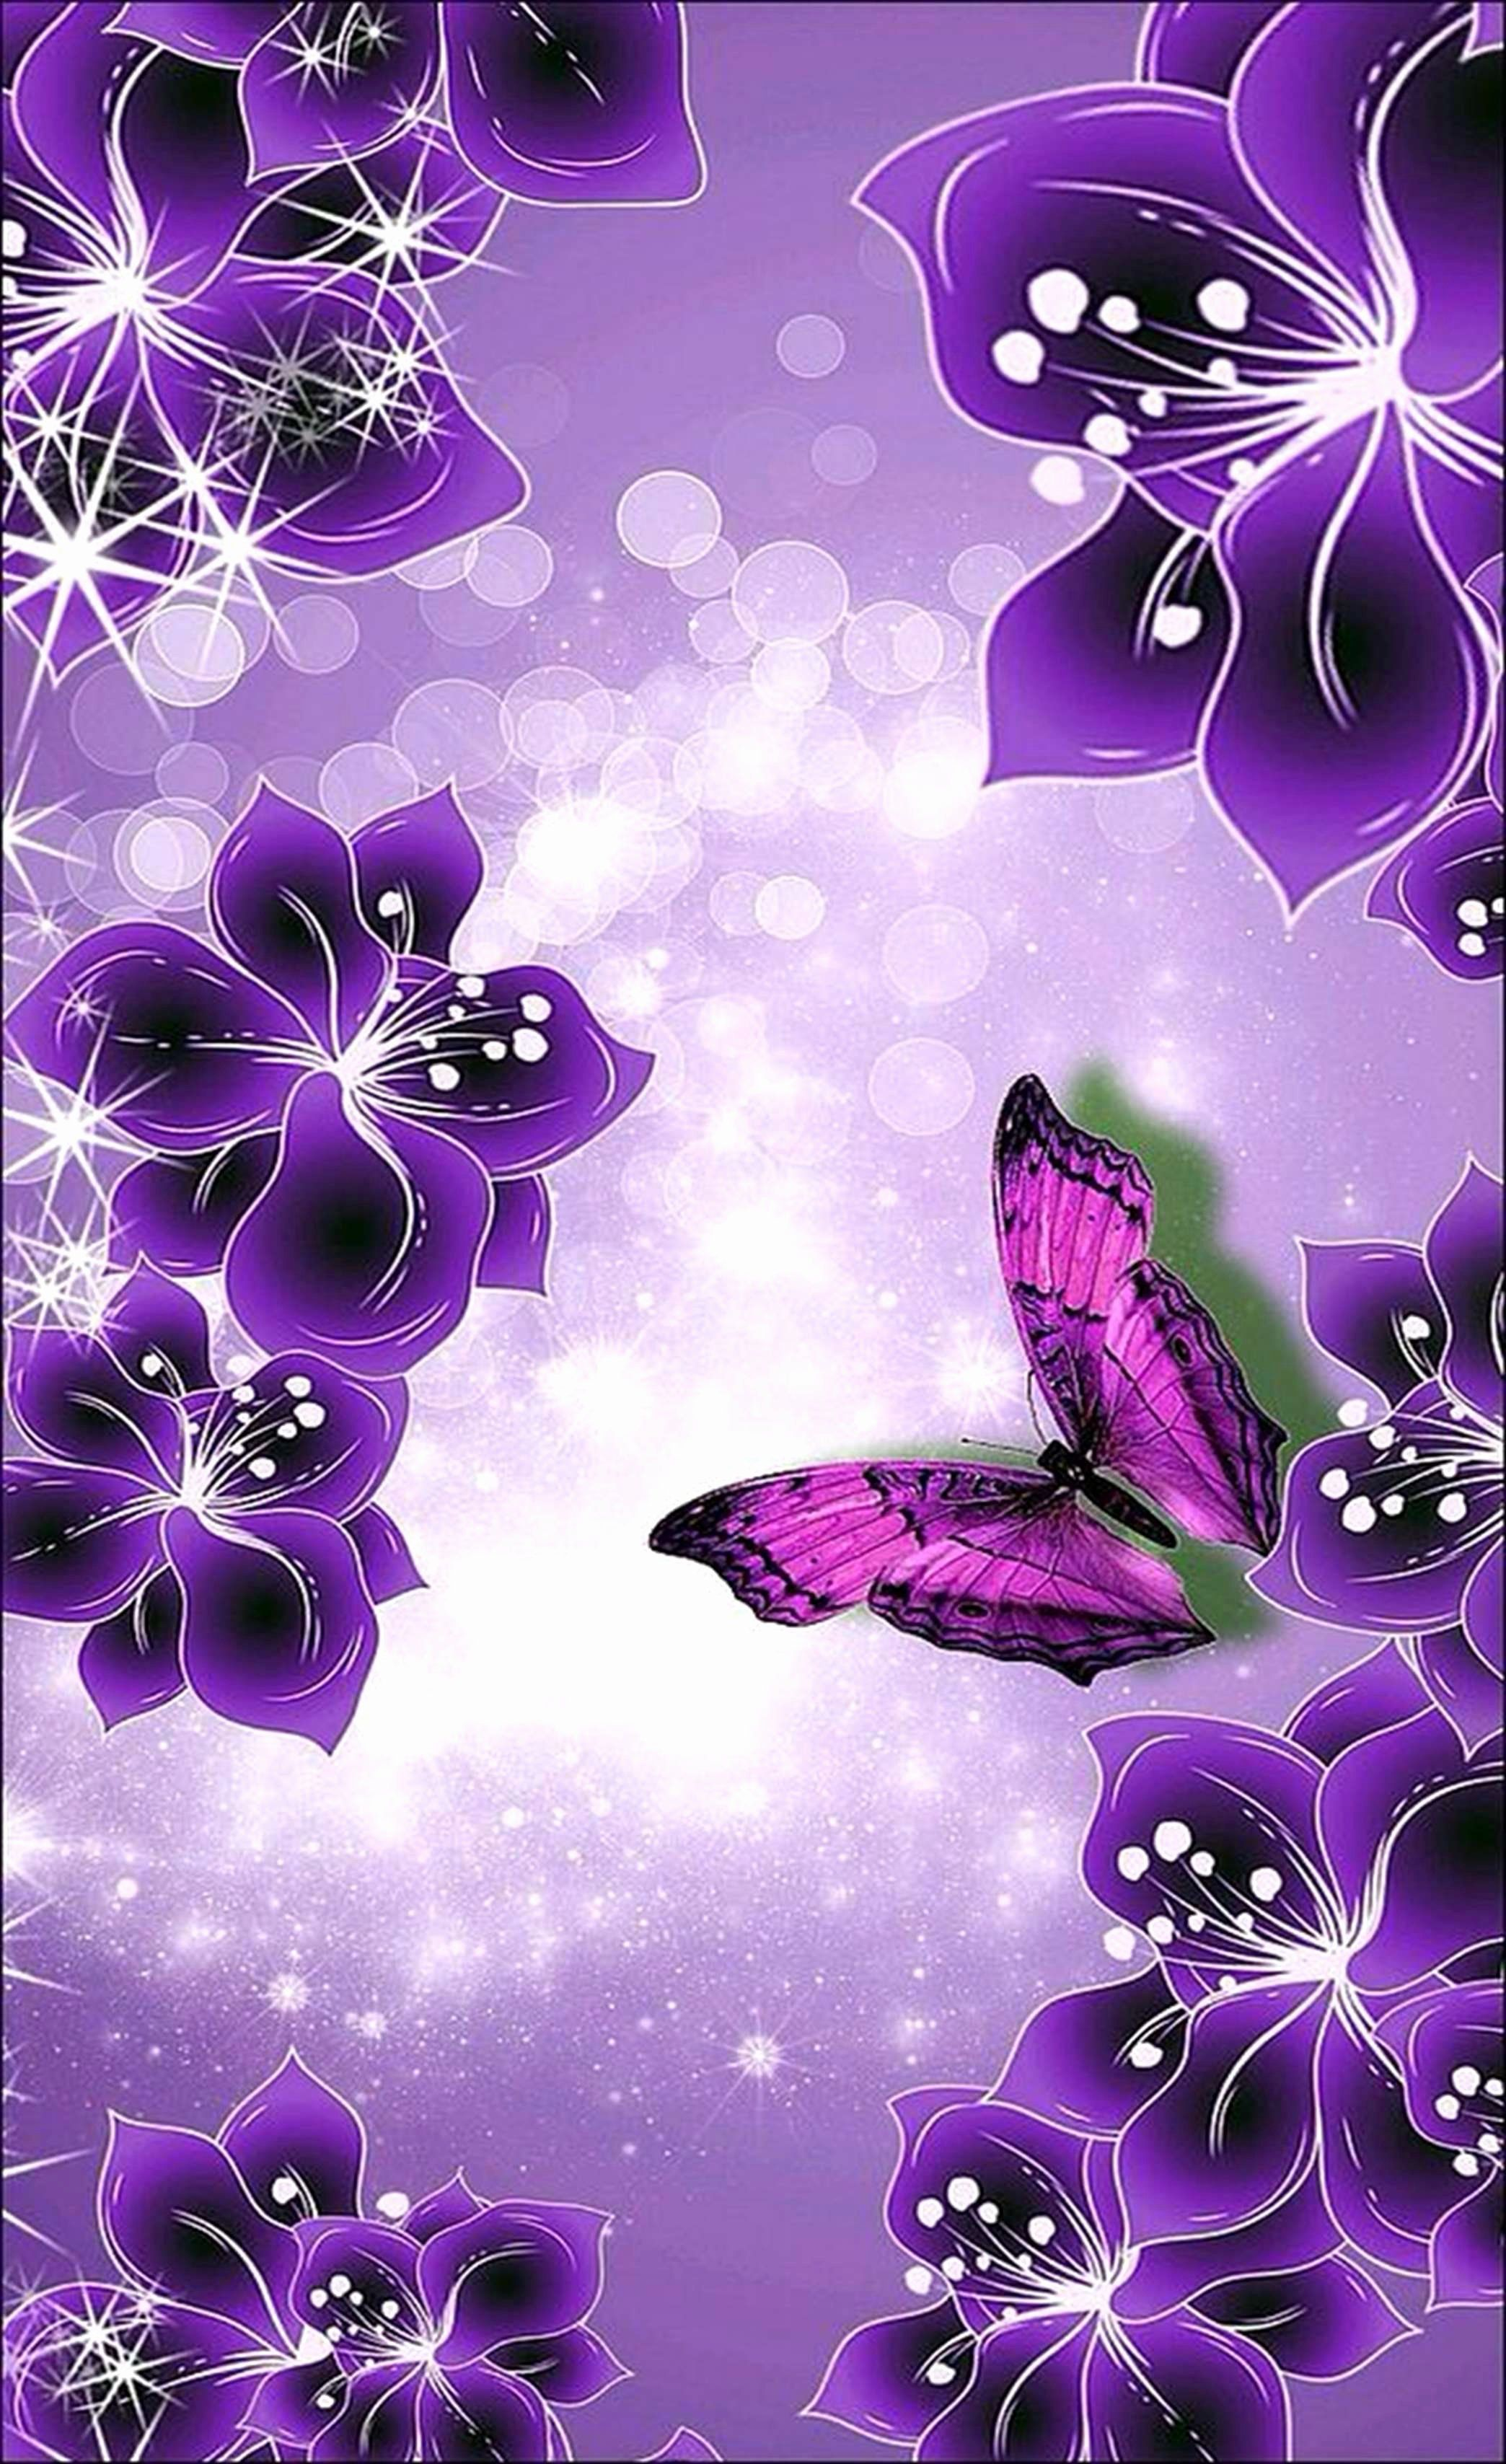 Coloring Border Design | Butterfly wallpaper, Butterfly ...